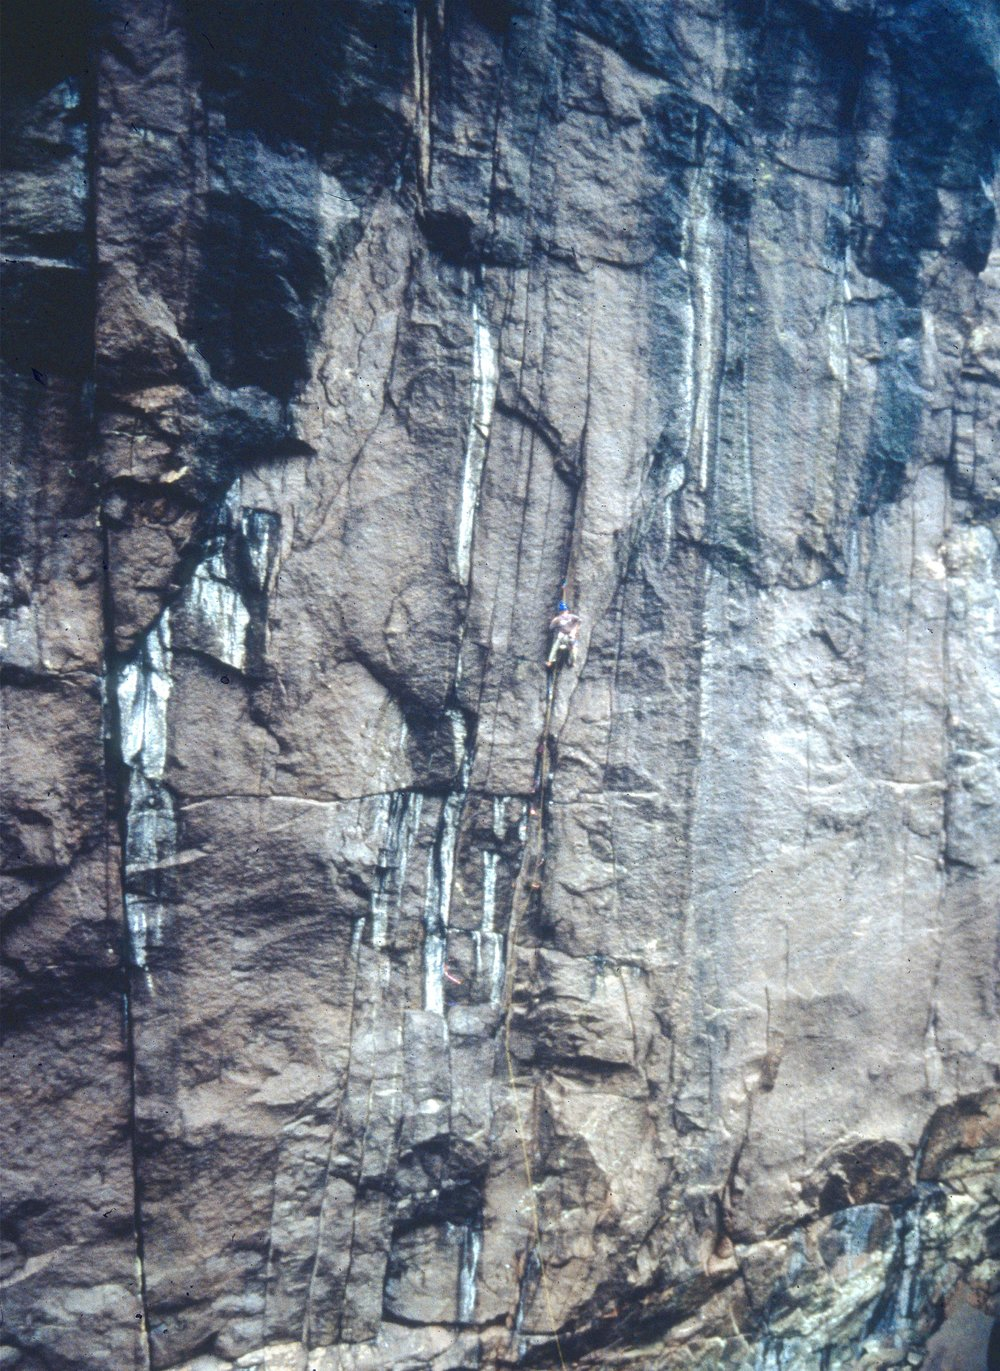 Leo Houlding on the crux pitch of Firefox E7, Jossingfjord in 1998. Photo: Andy Cave